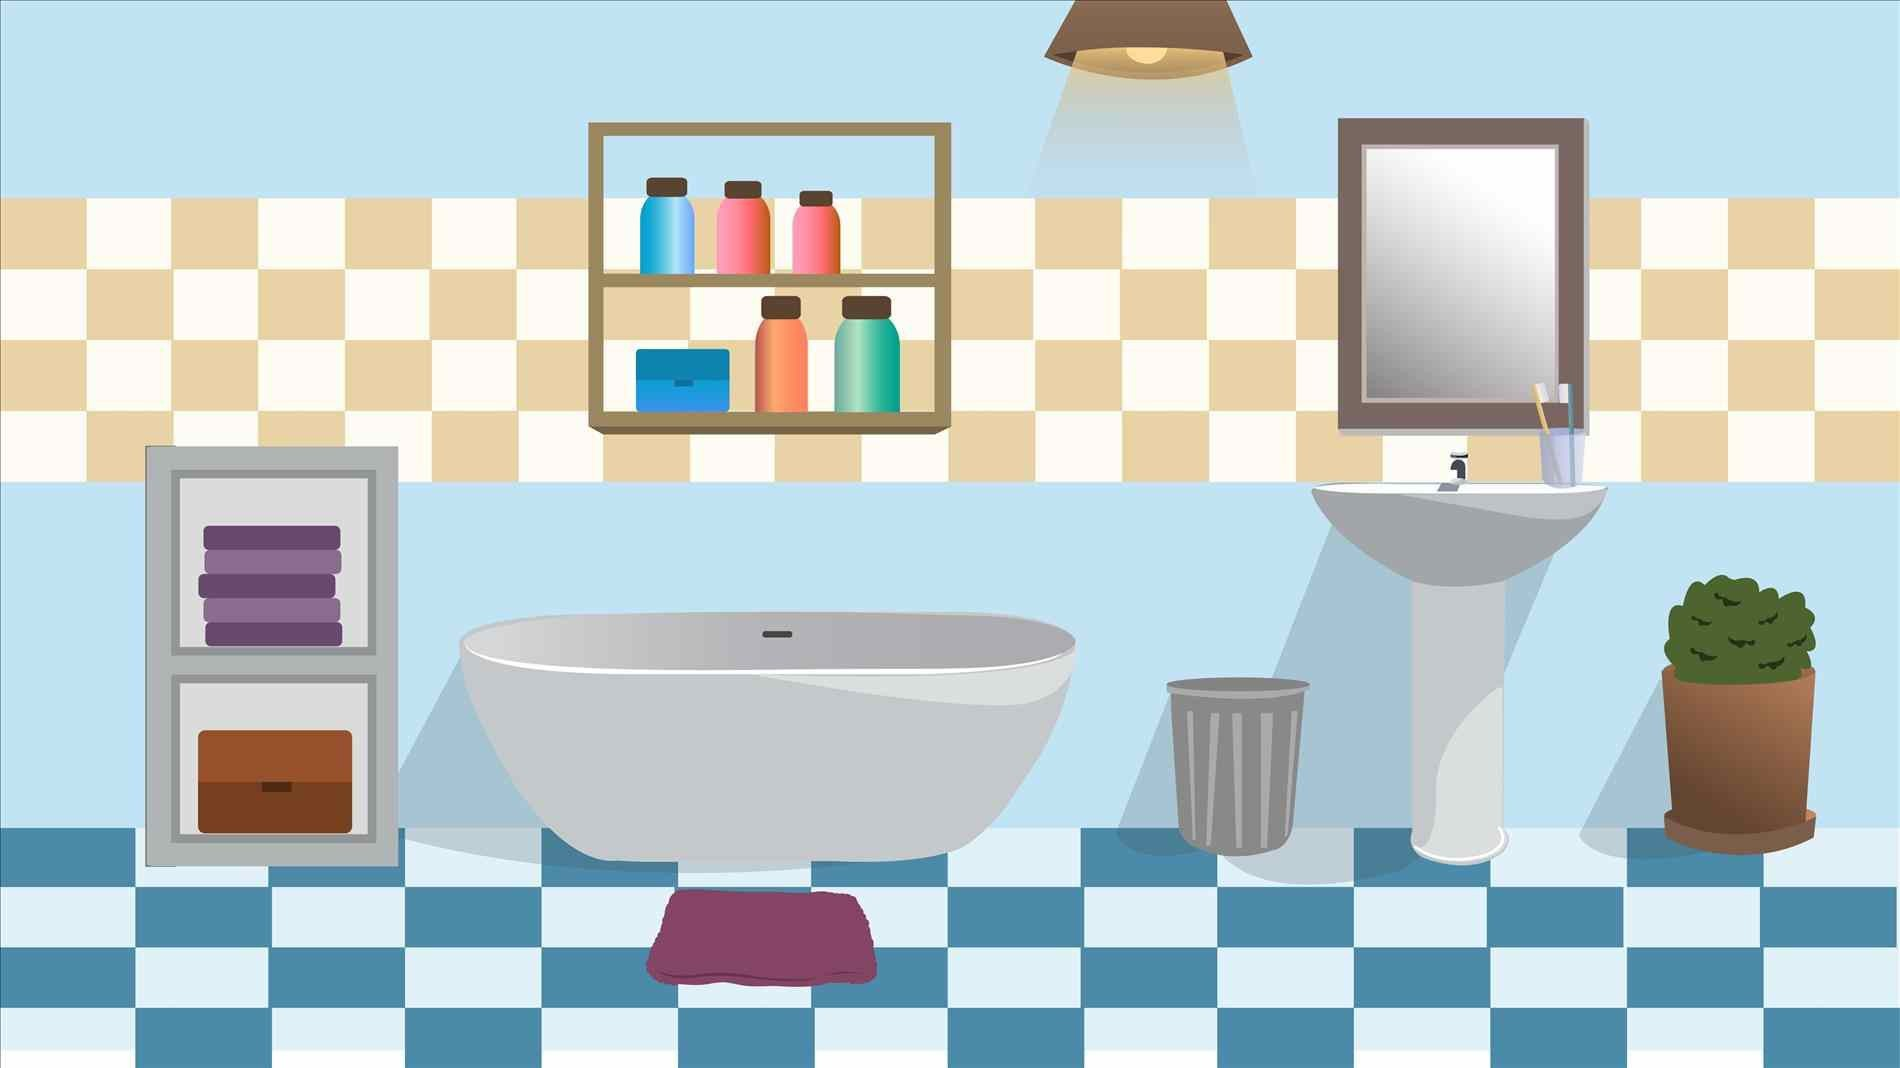 Bathroom clipart. New furniture ogahealth com